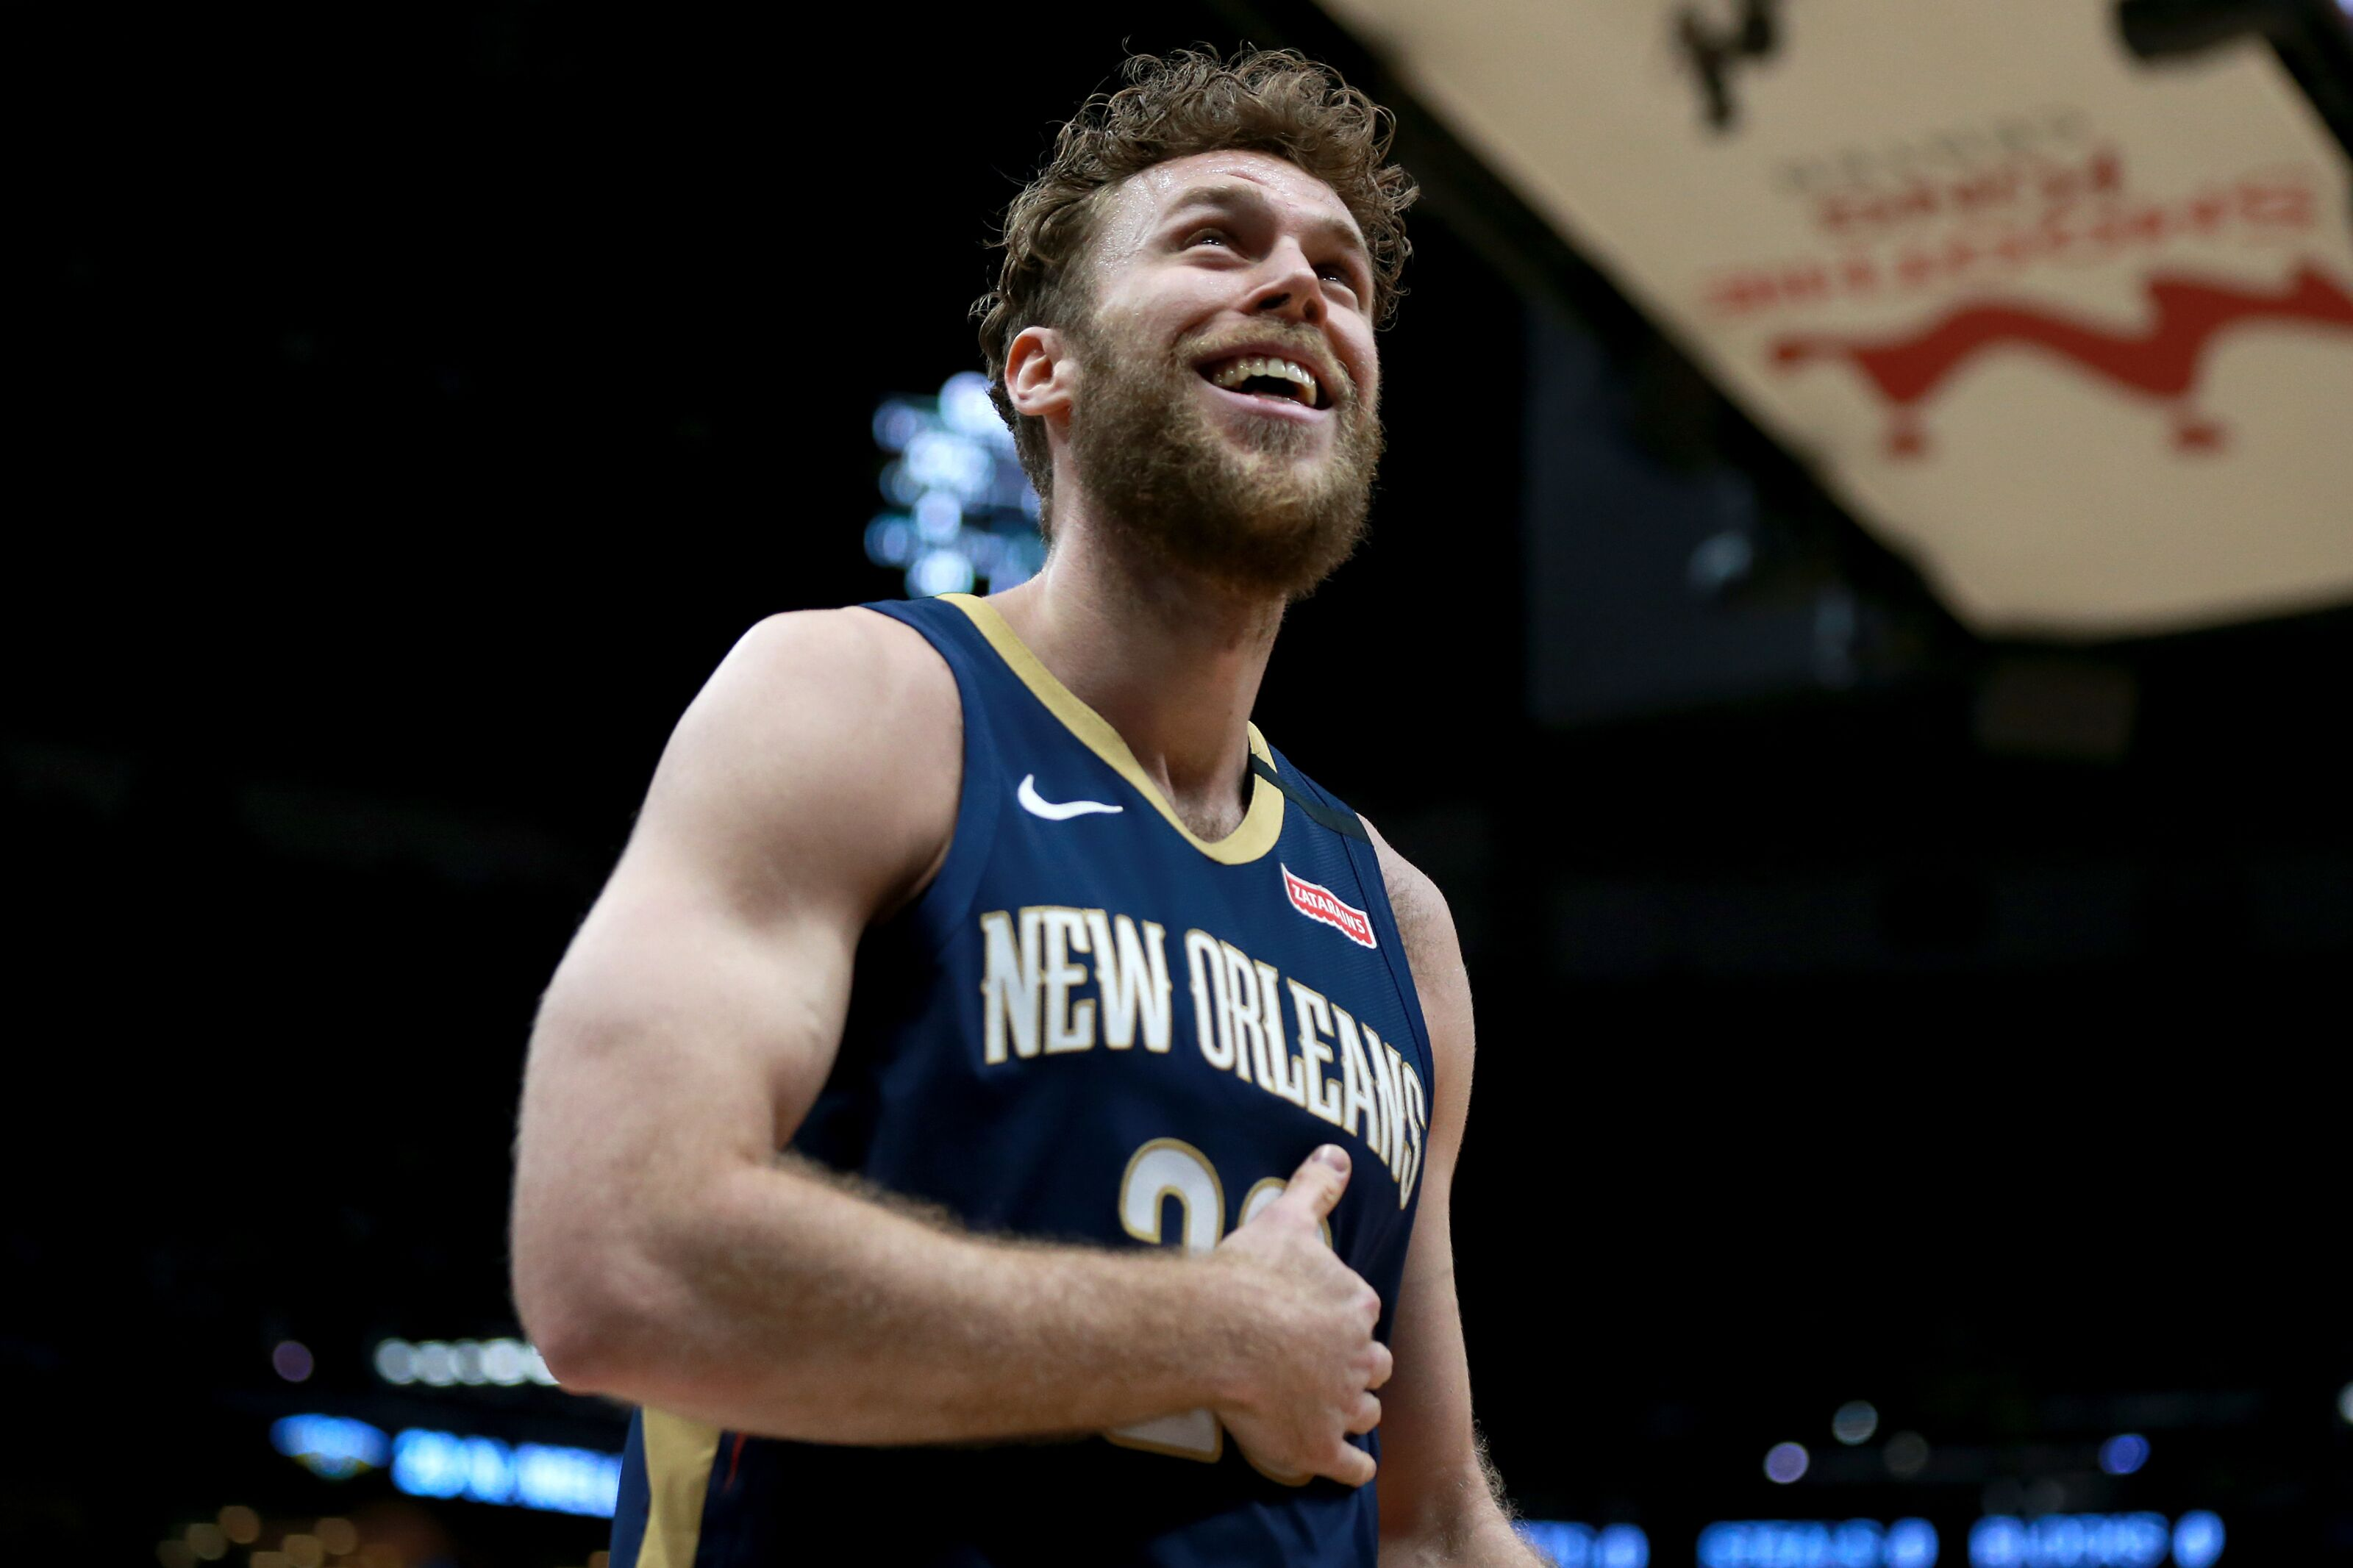 All 3 New Orleans Pelicans players can maximize their Rising Stars debut